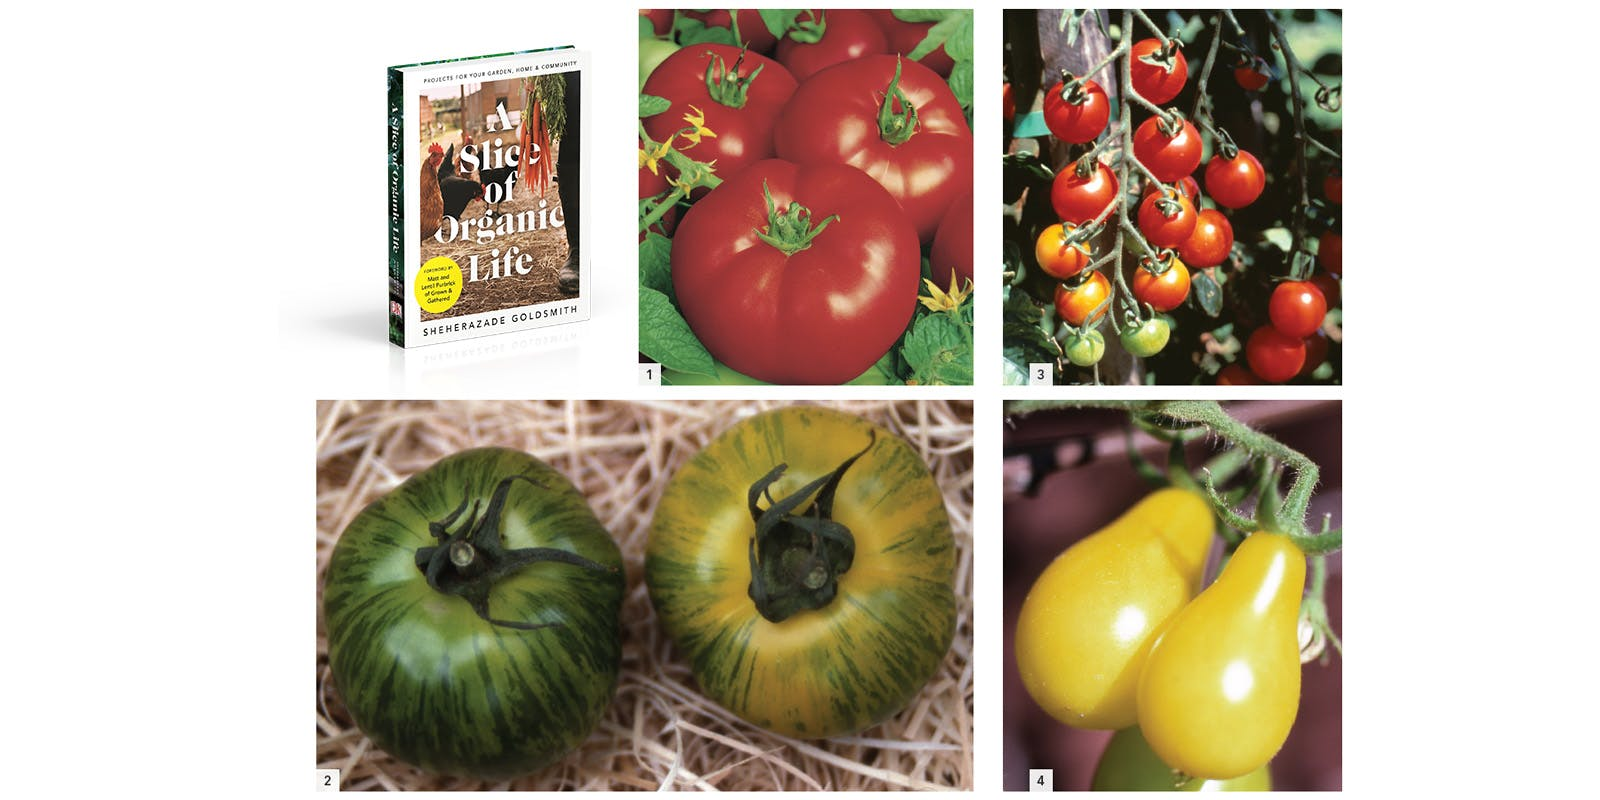 Grow pots of tomatoes